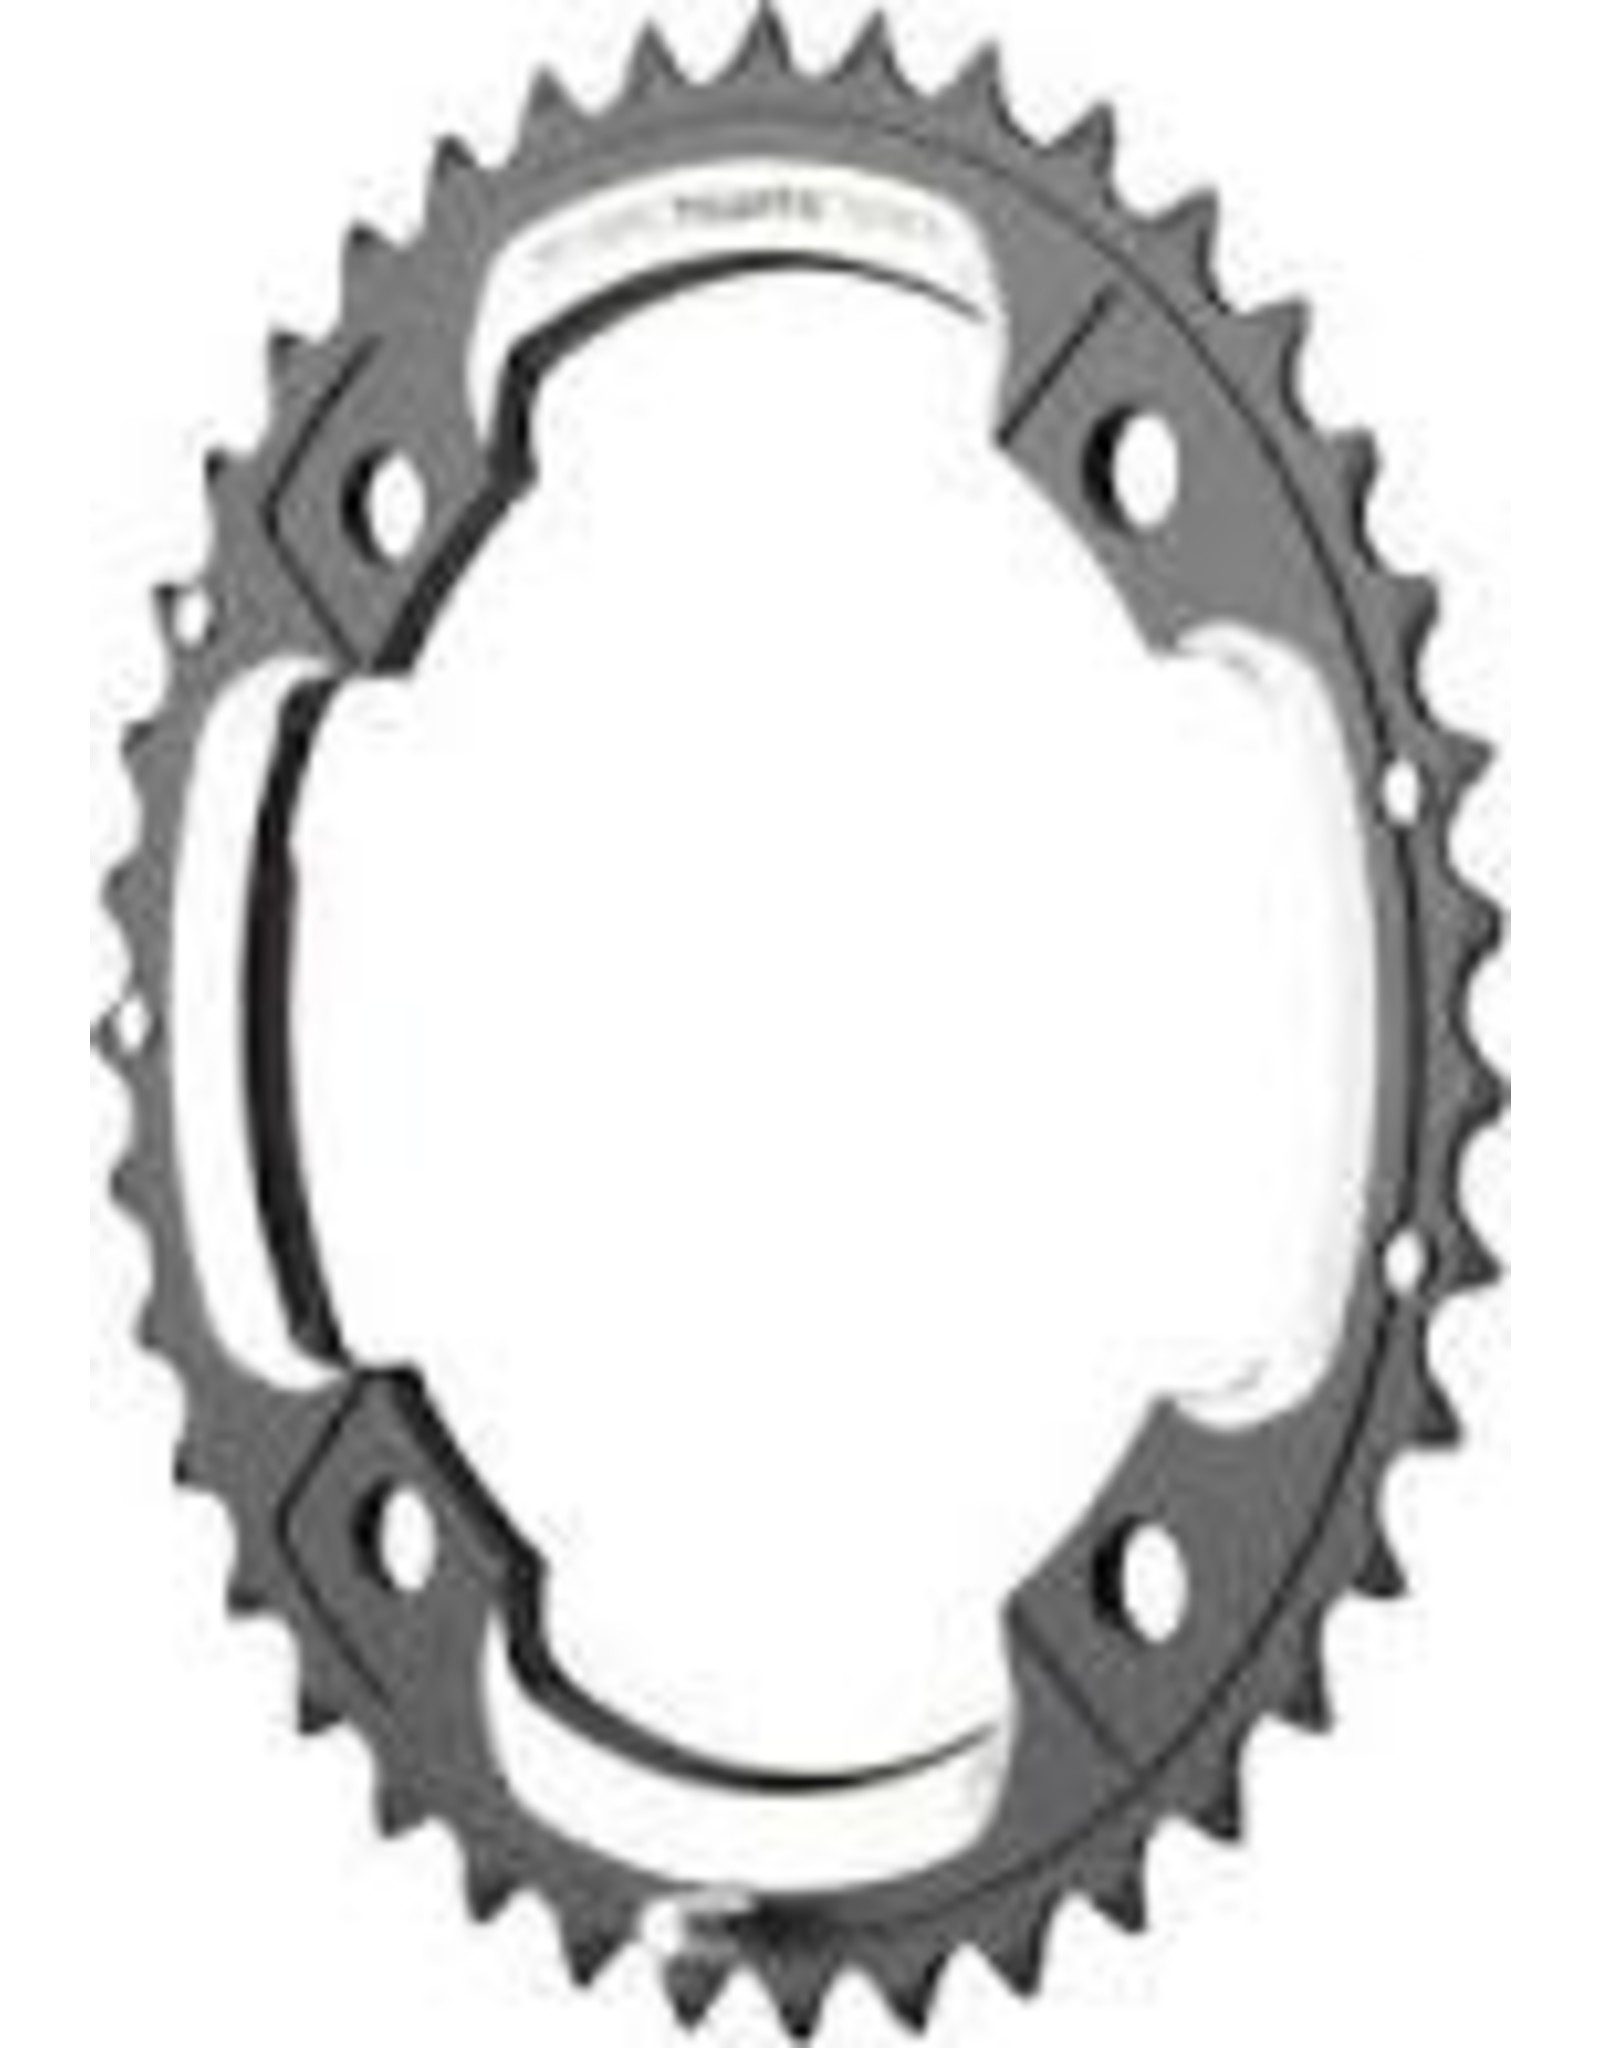 SRAM Chainring SRAM 48T 10-Speed 110mm Black Chainring for BB30 Crank, Short Over-shift Pin, Use with 34T